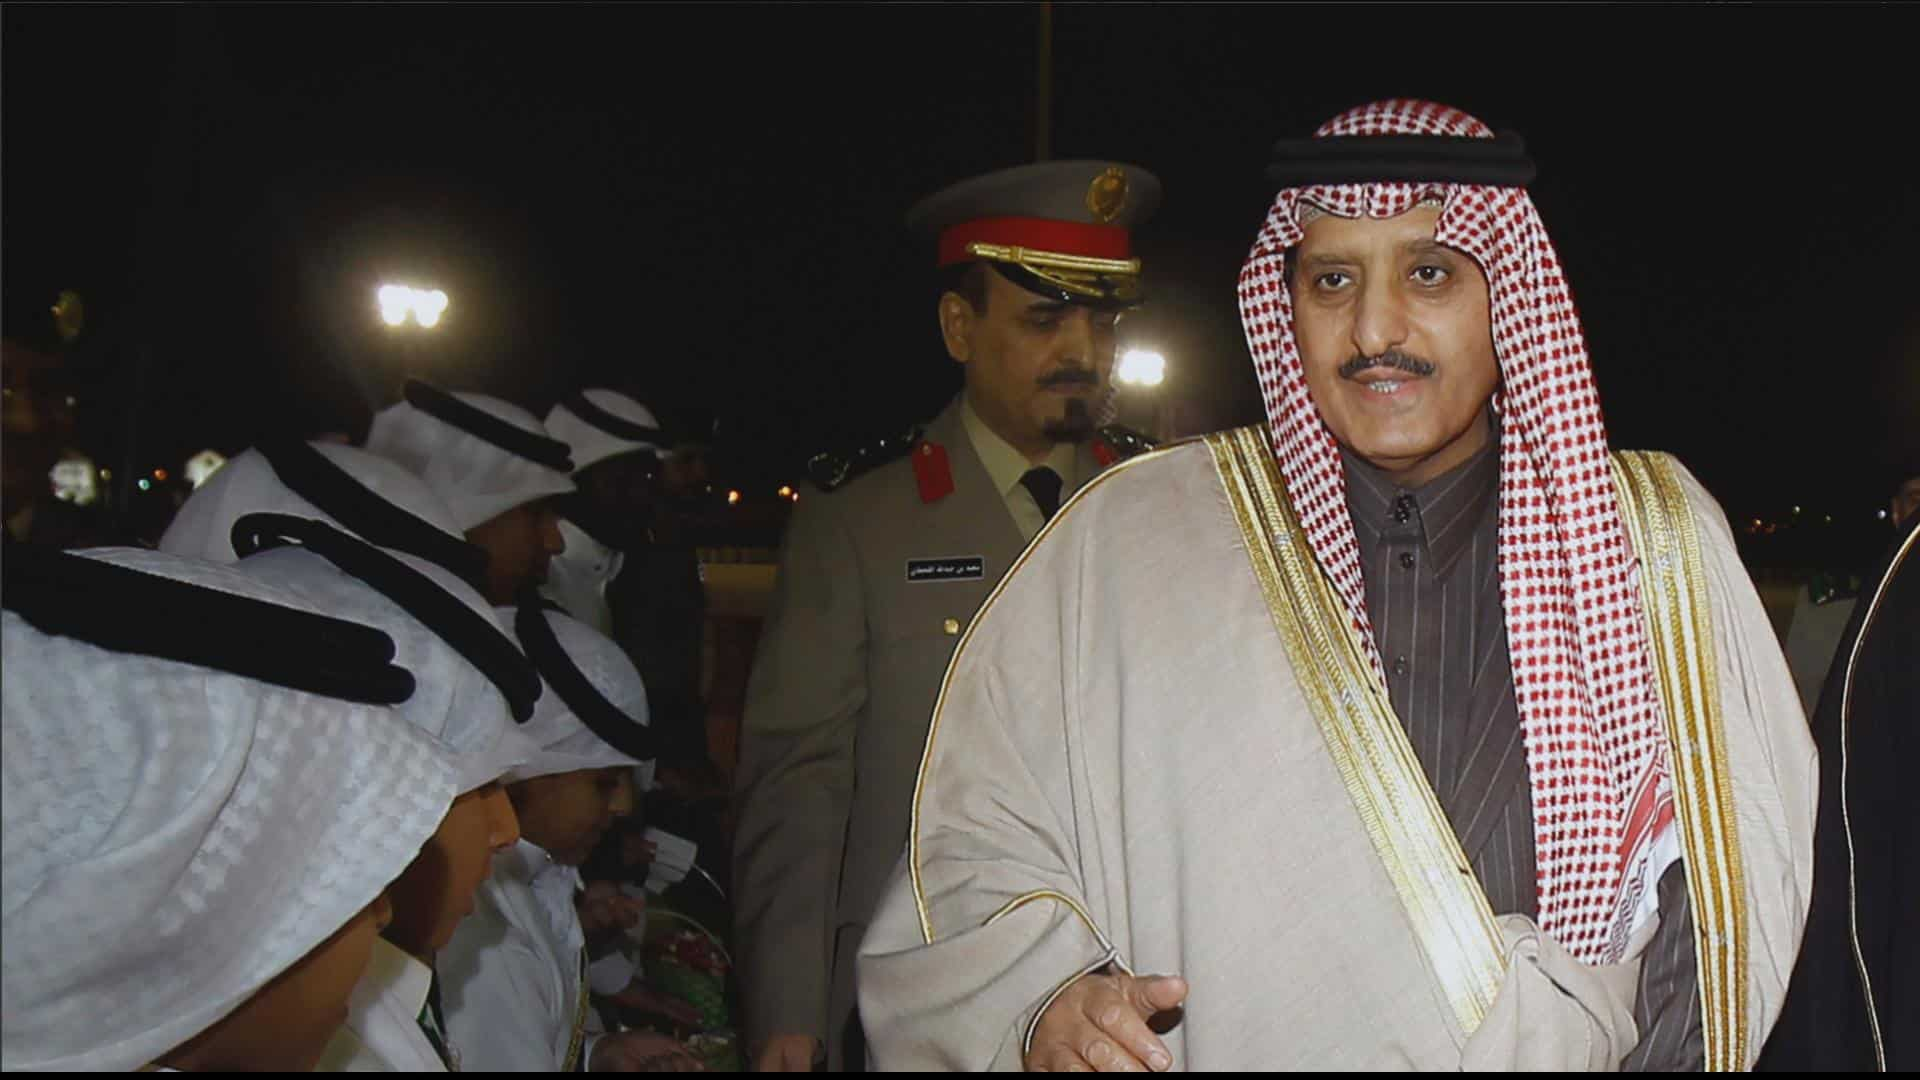 Prince Ahmed bin Abdulaziz Returns home to Riyadh